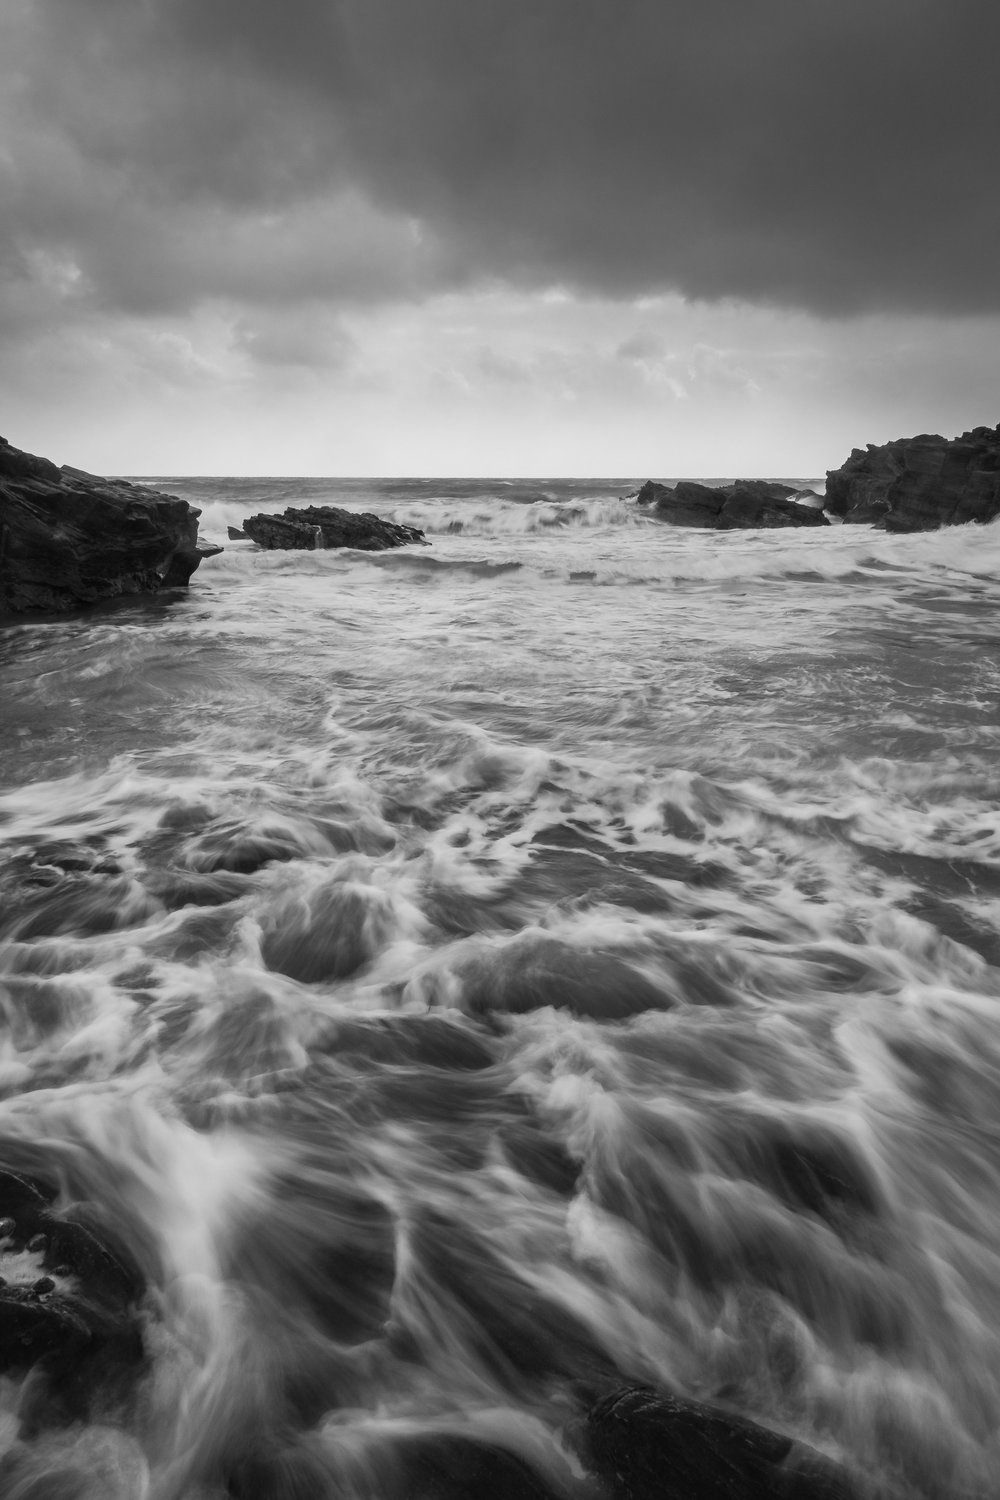 Sony RX100 M4, 8.8mm (24mm @ 35mm equiv), 1/4 sec @ f/11, ISO 80, in-camera ND filter on.  Processed and converted to black & white in Lightroom CC.